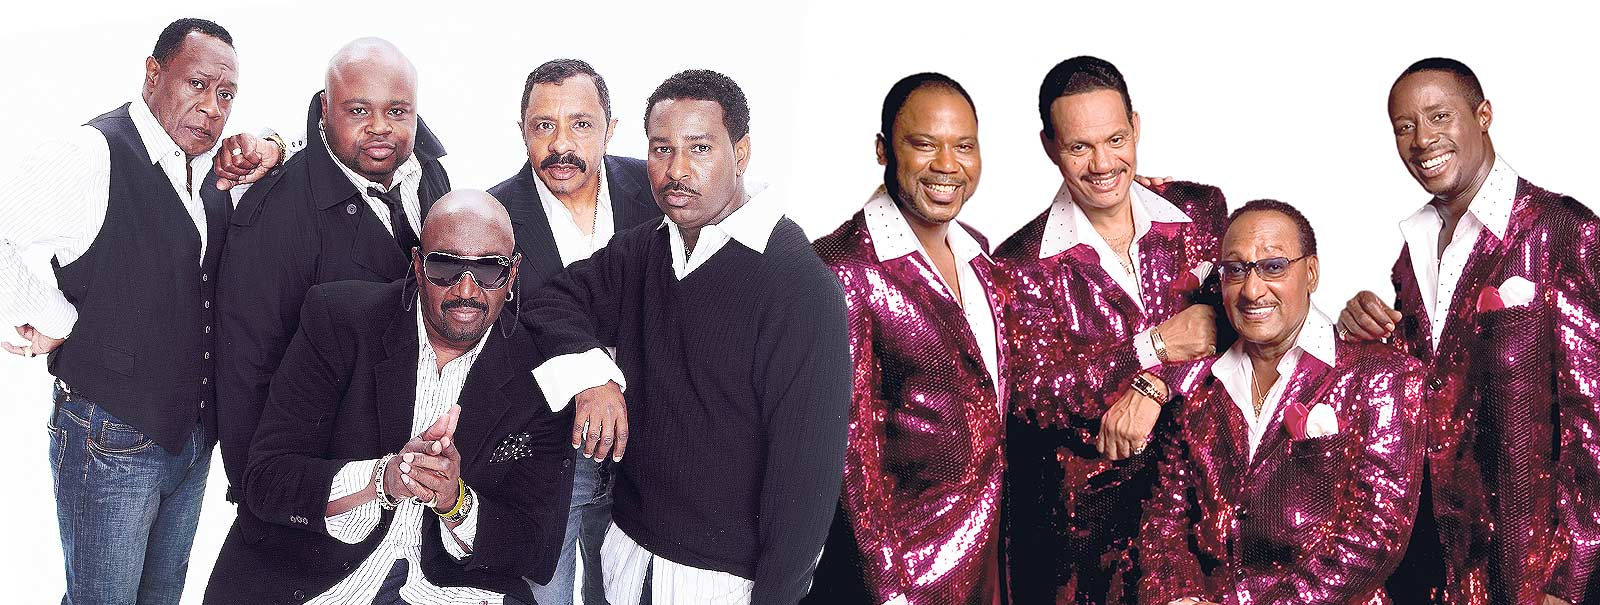 More Info - The Temptations and The Four Tops